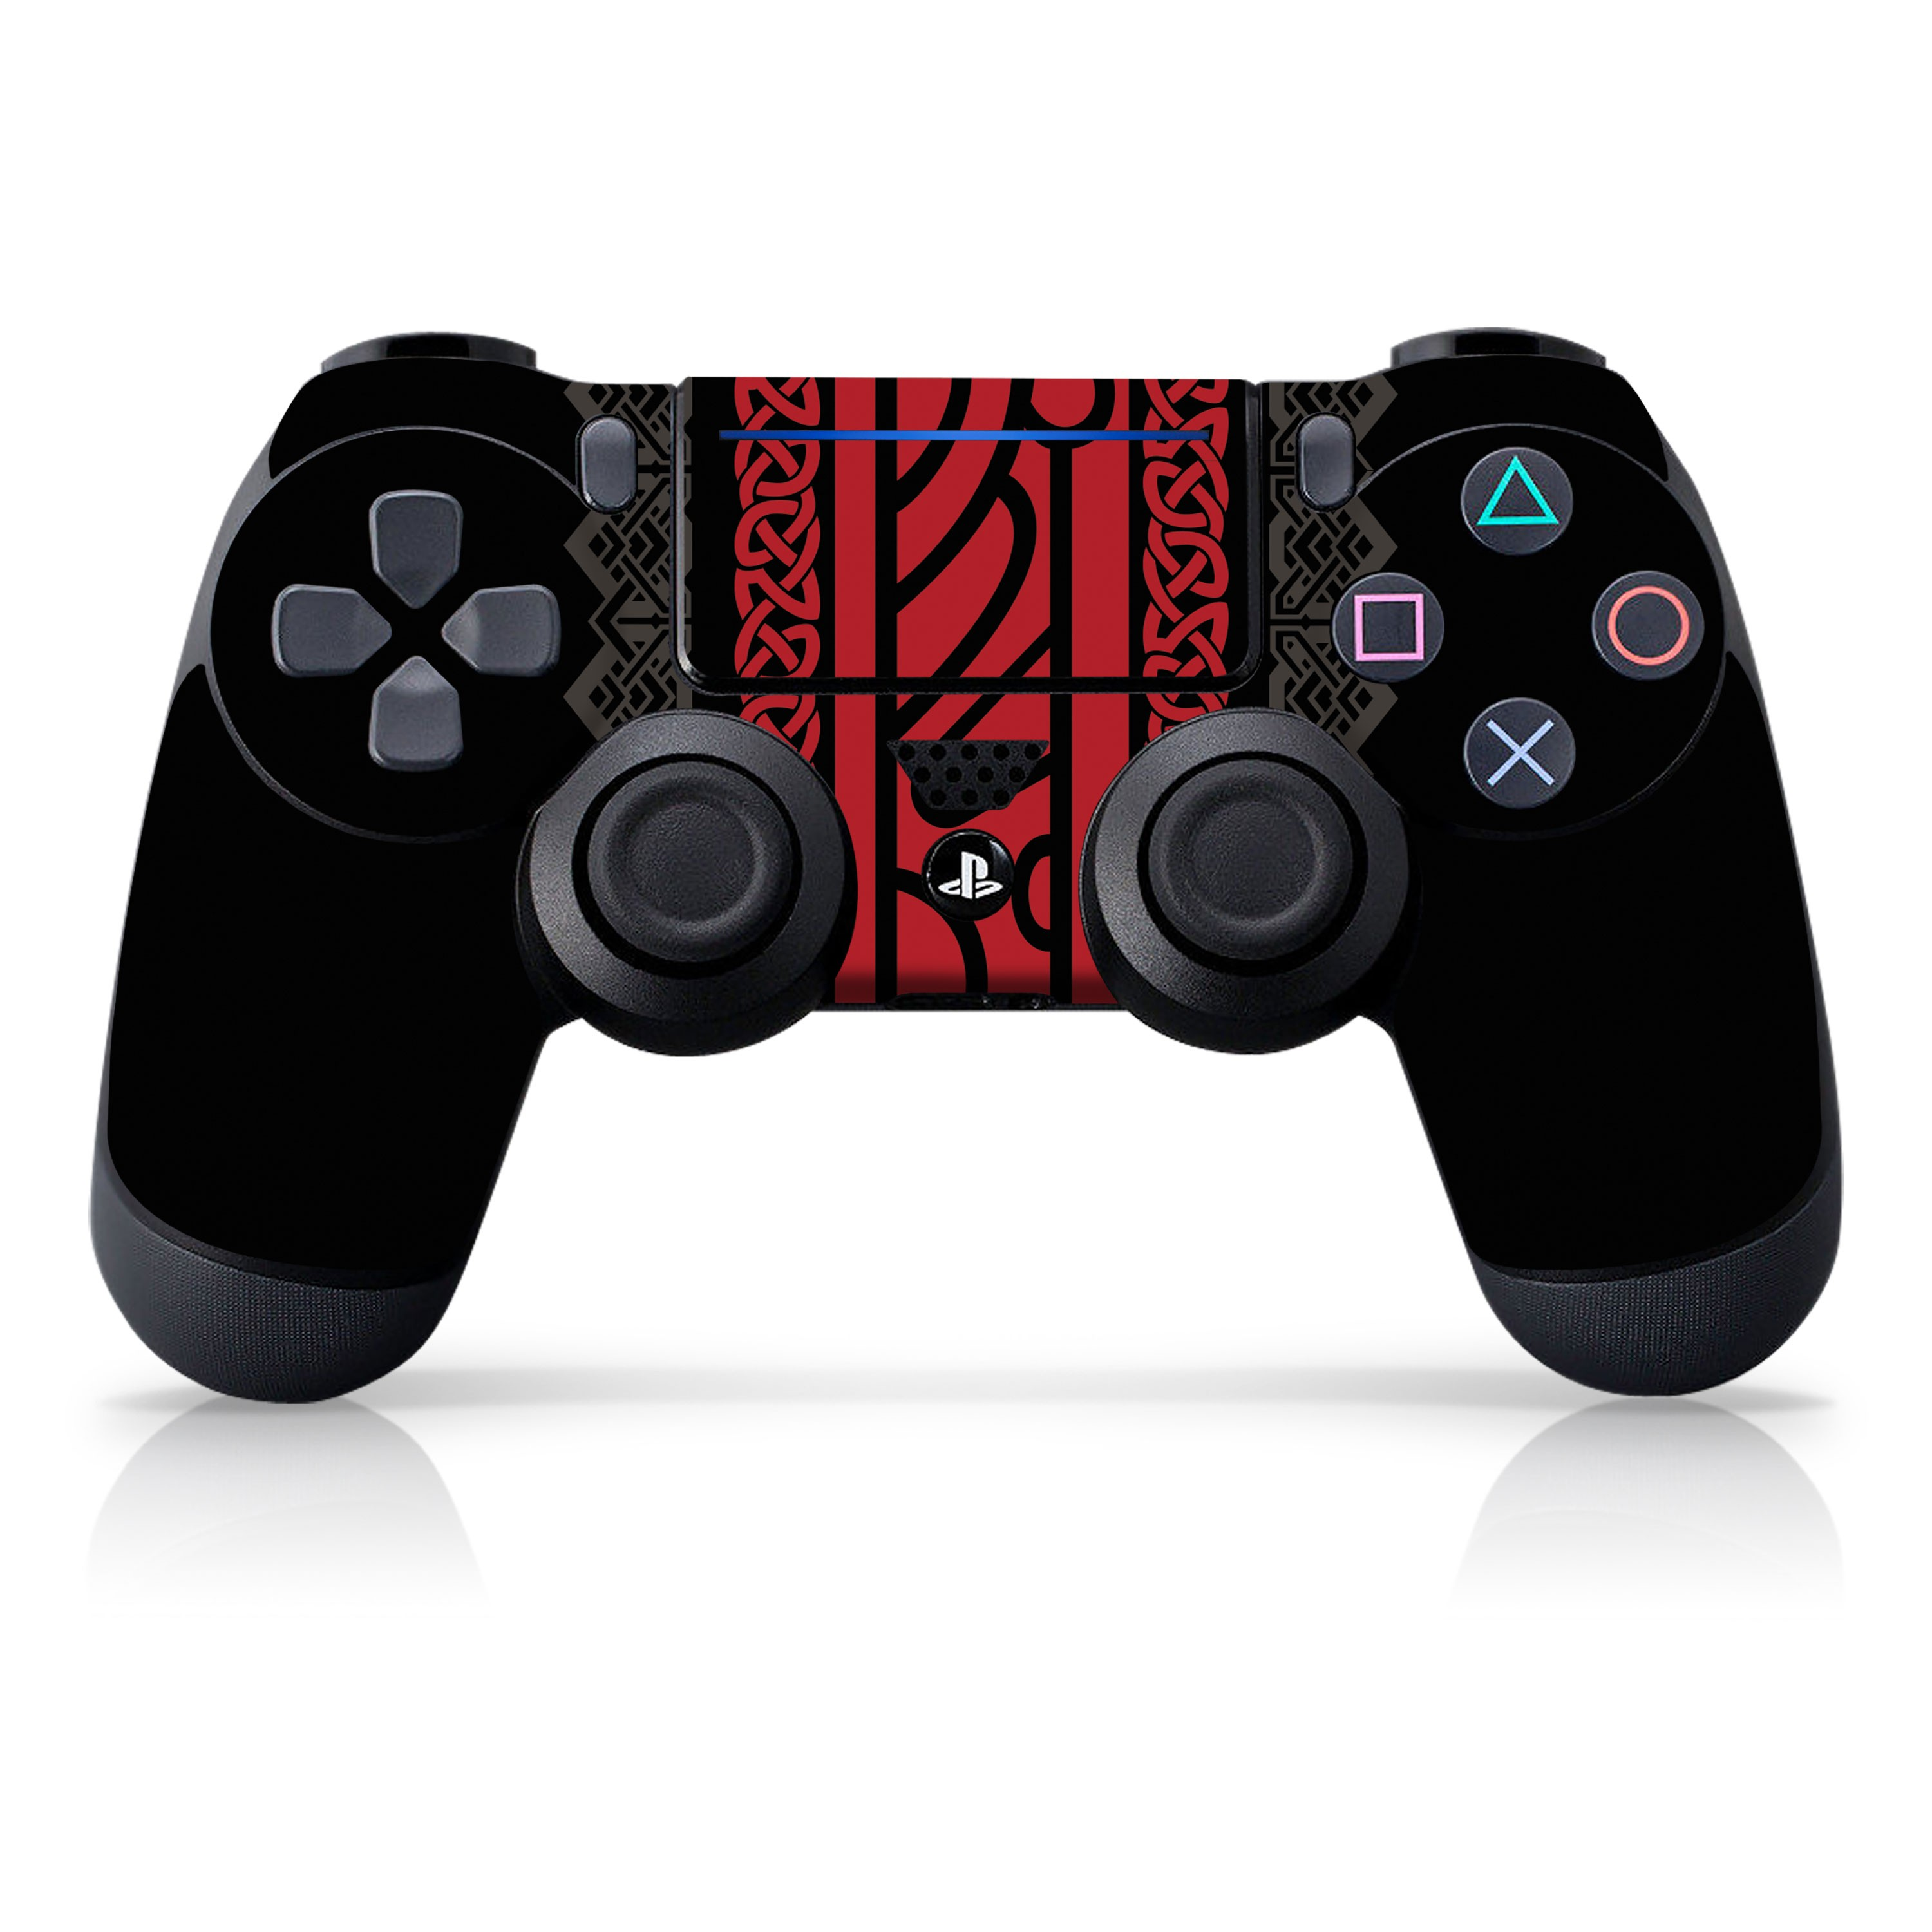 "Officially Licensed PlayStation 4 God of War DUALSHOCK 4 Wireless Controller Skin and Tech Decals ""Tapestry"""